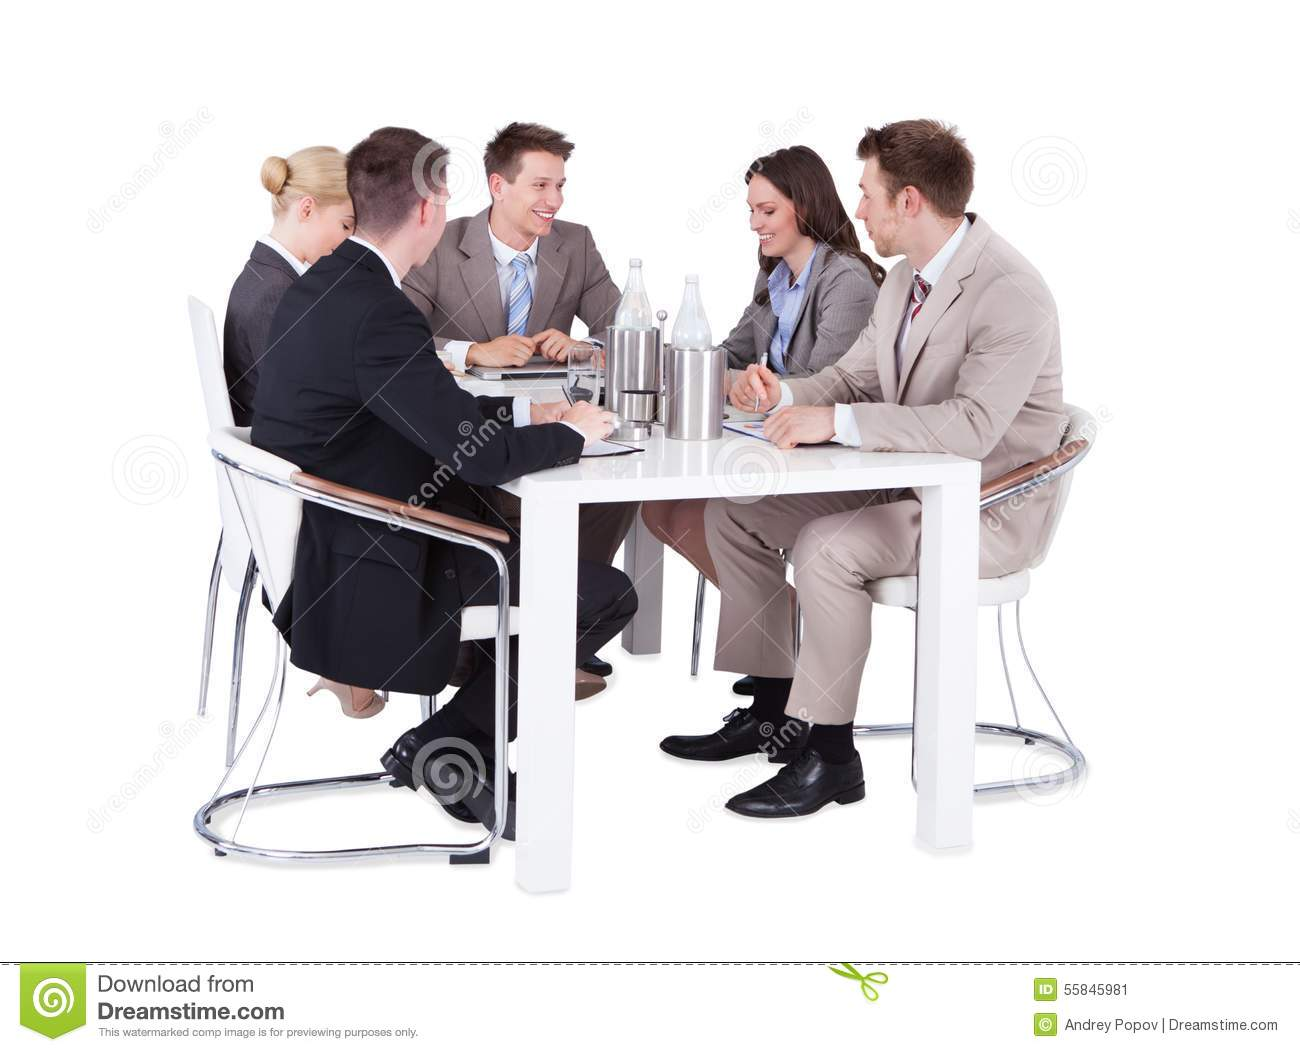 Office chair vector png - Business People Having Conference Meeting Over White